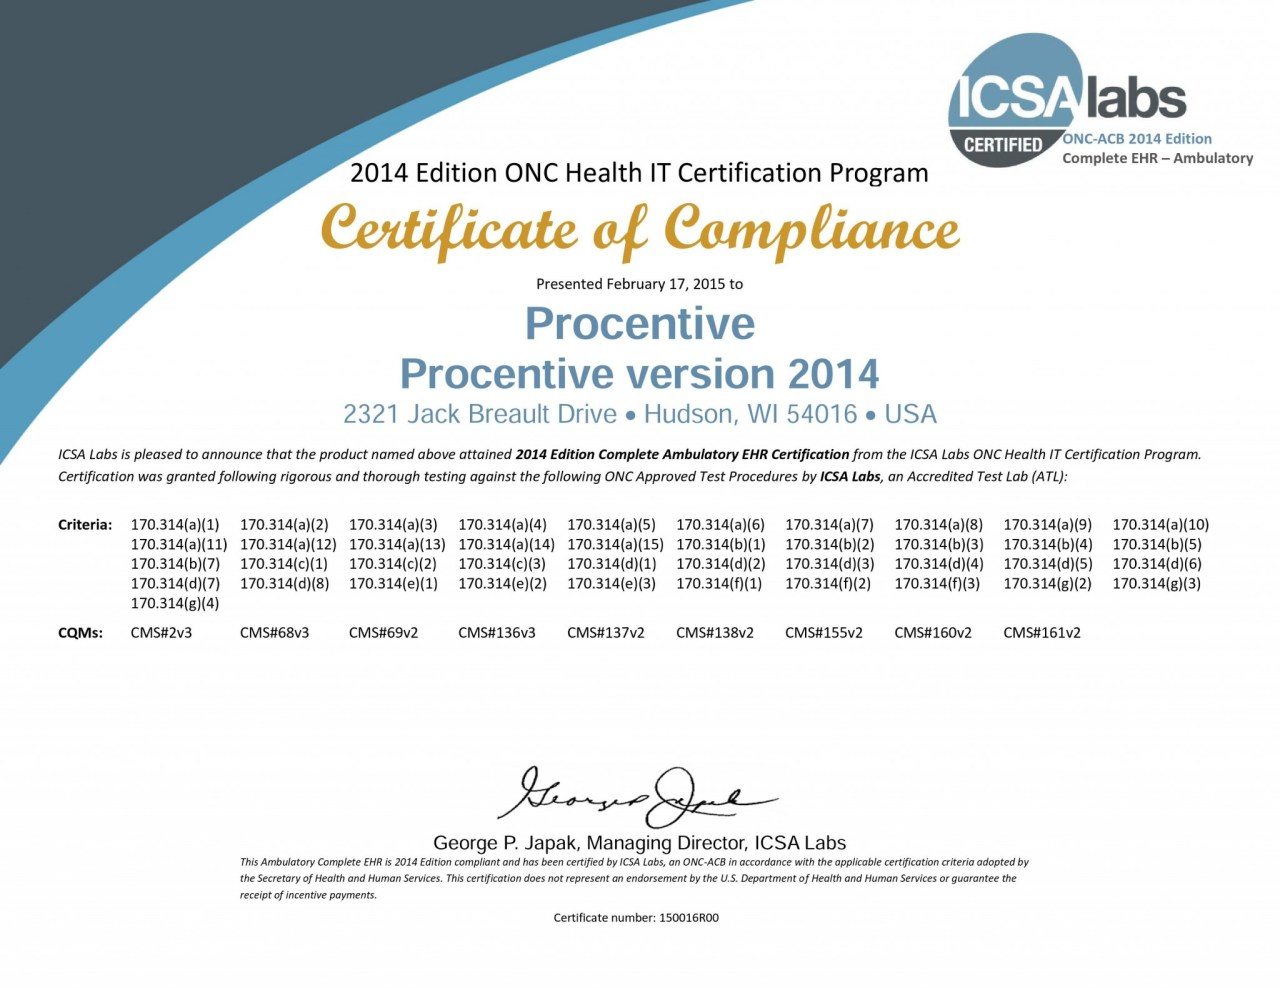 Procentive Meaningful Use Certificate